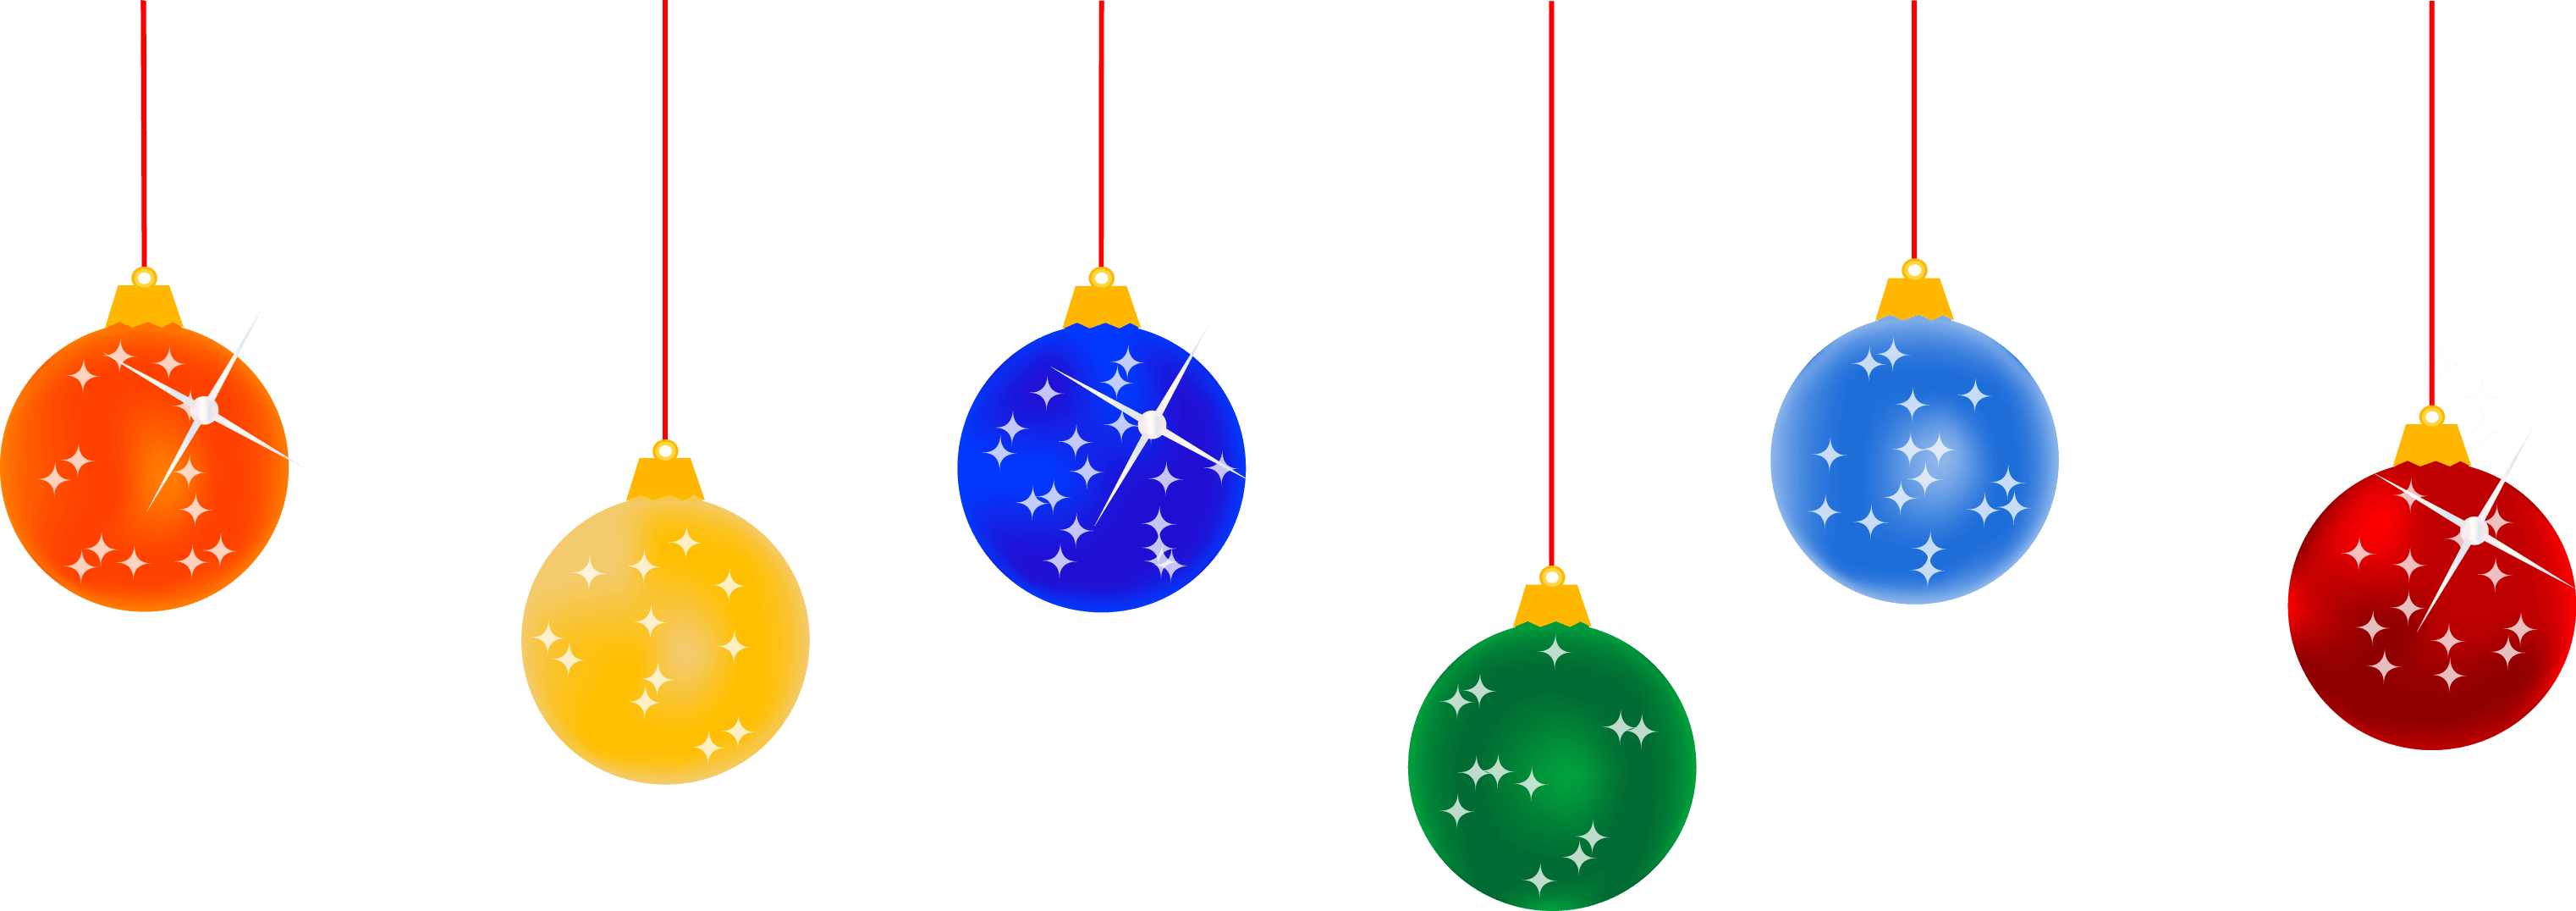 Christmas lights clipart transparent background svg royalty free library Christmas Lights Png Picture svg royalty free library